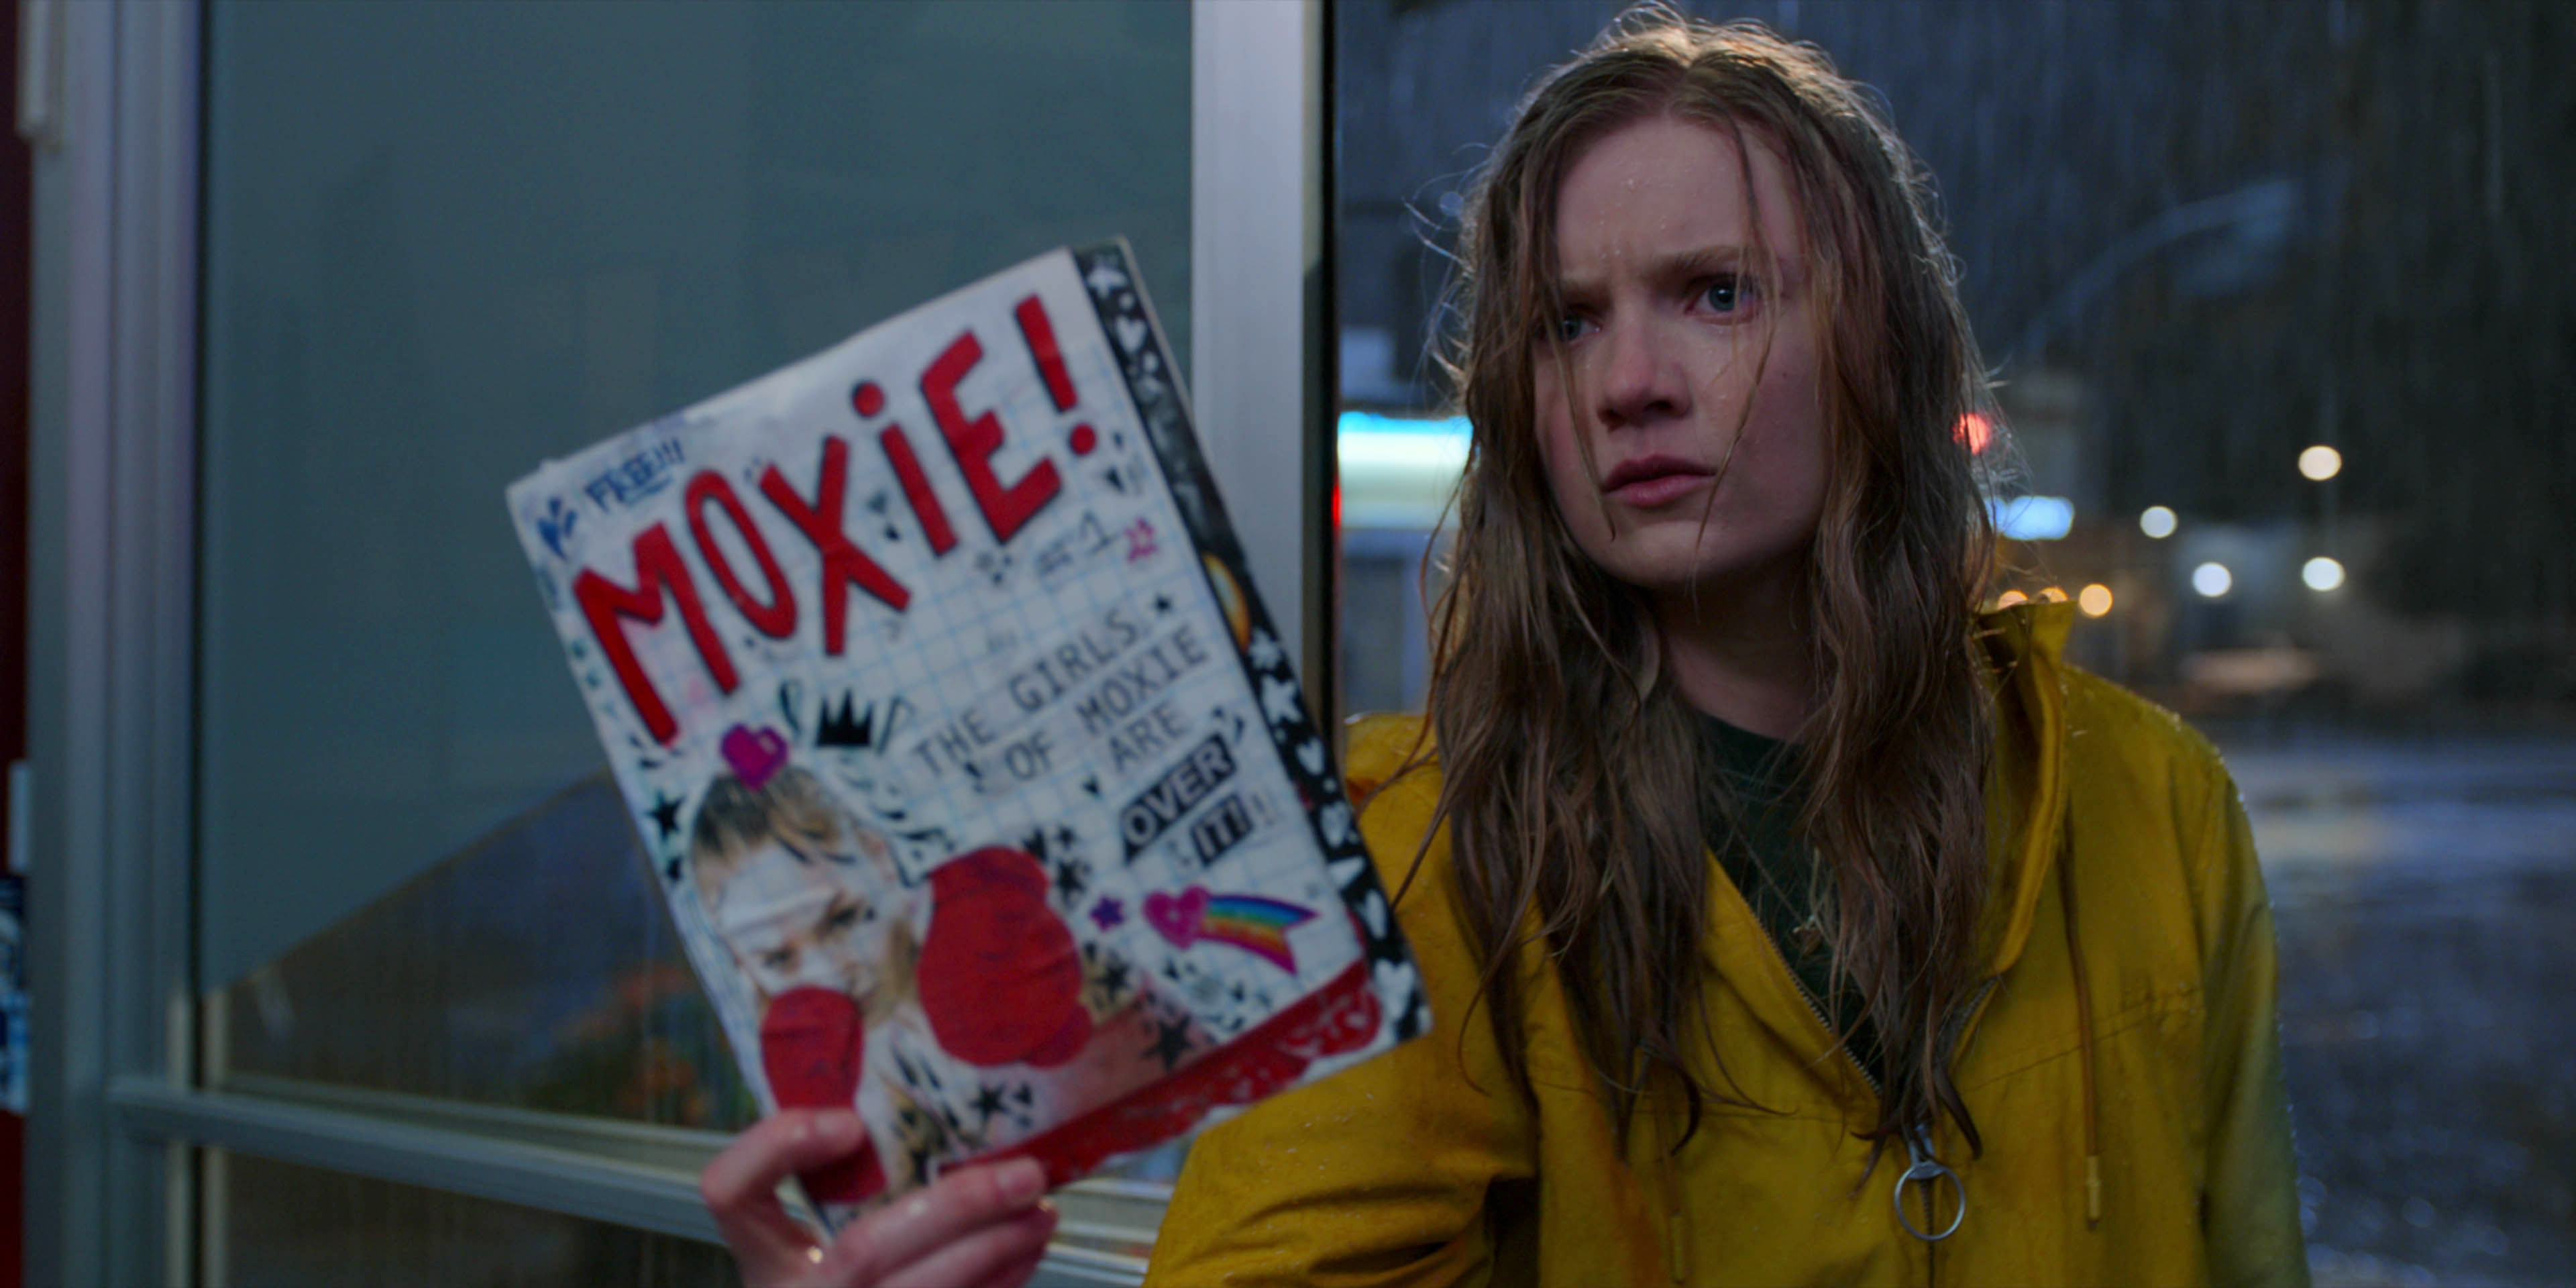 A young white girl wears a yellow raincoat and steps into a store while holding a zine.